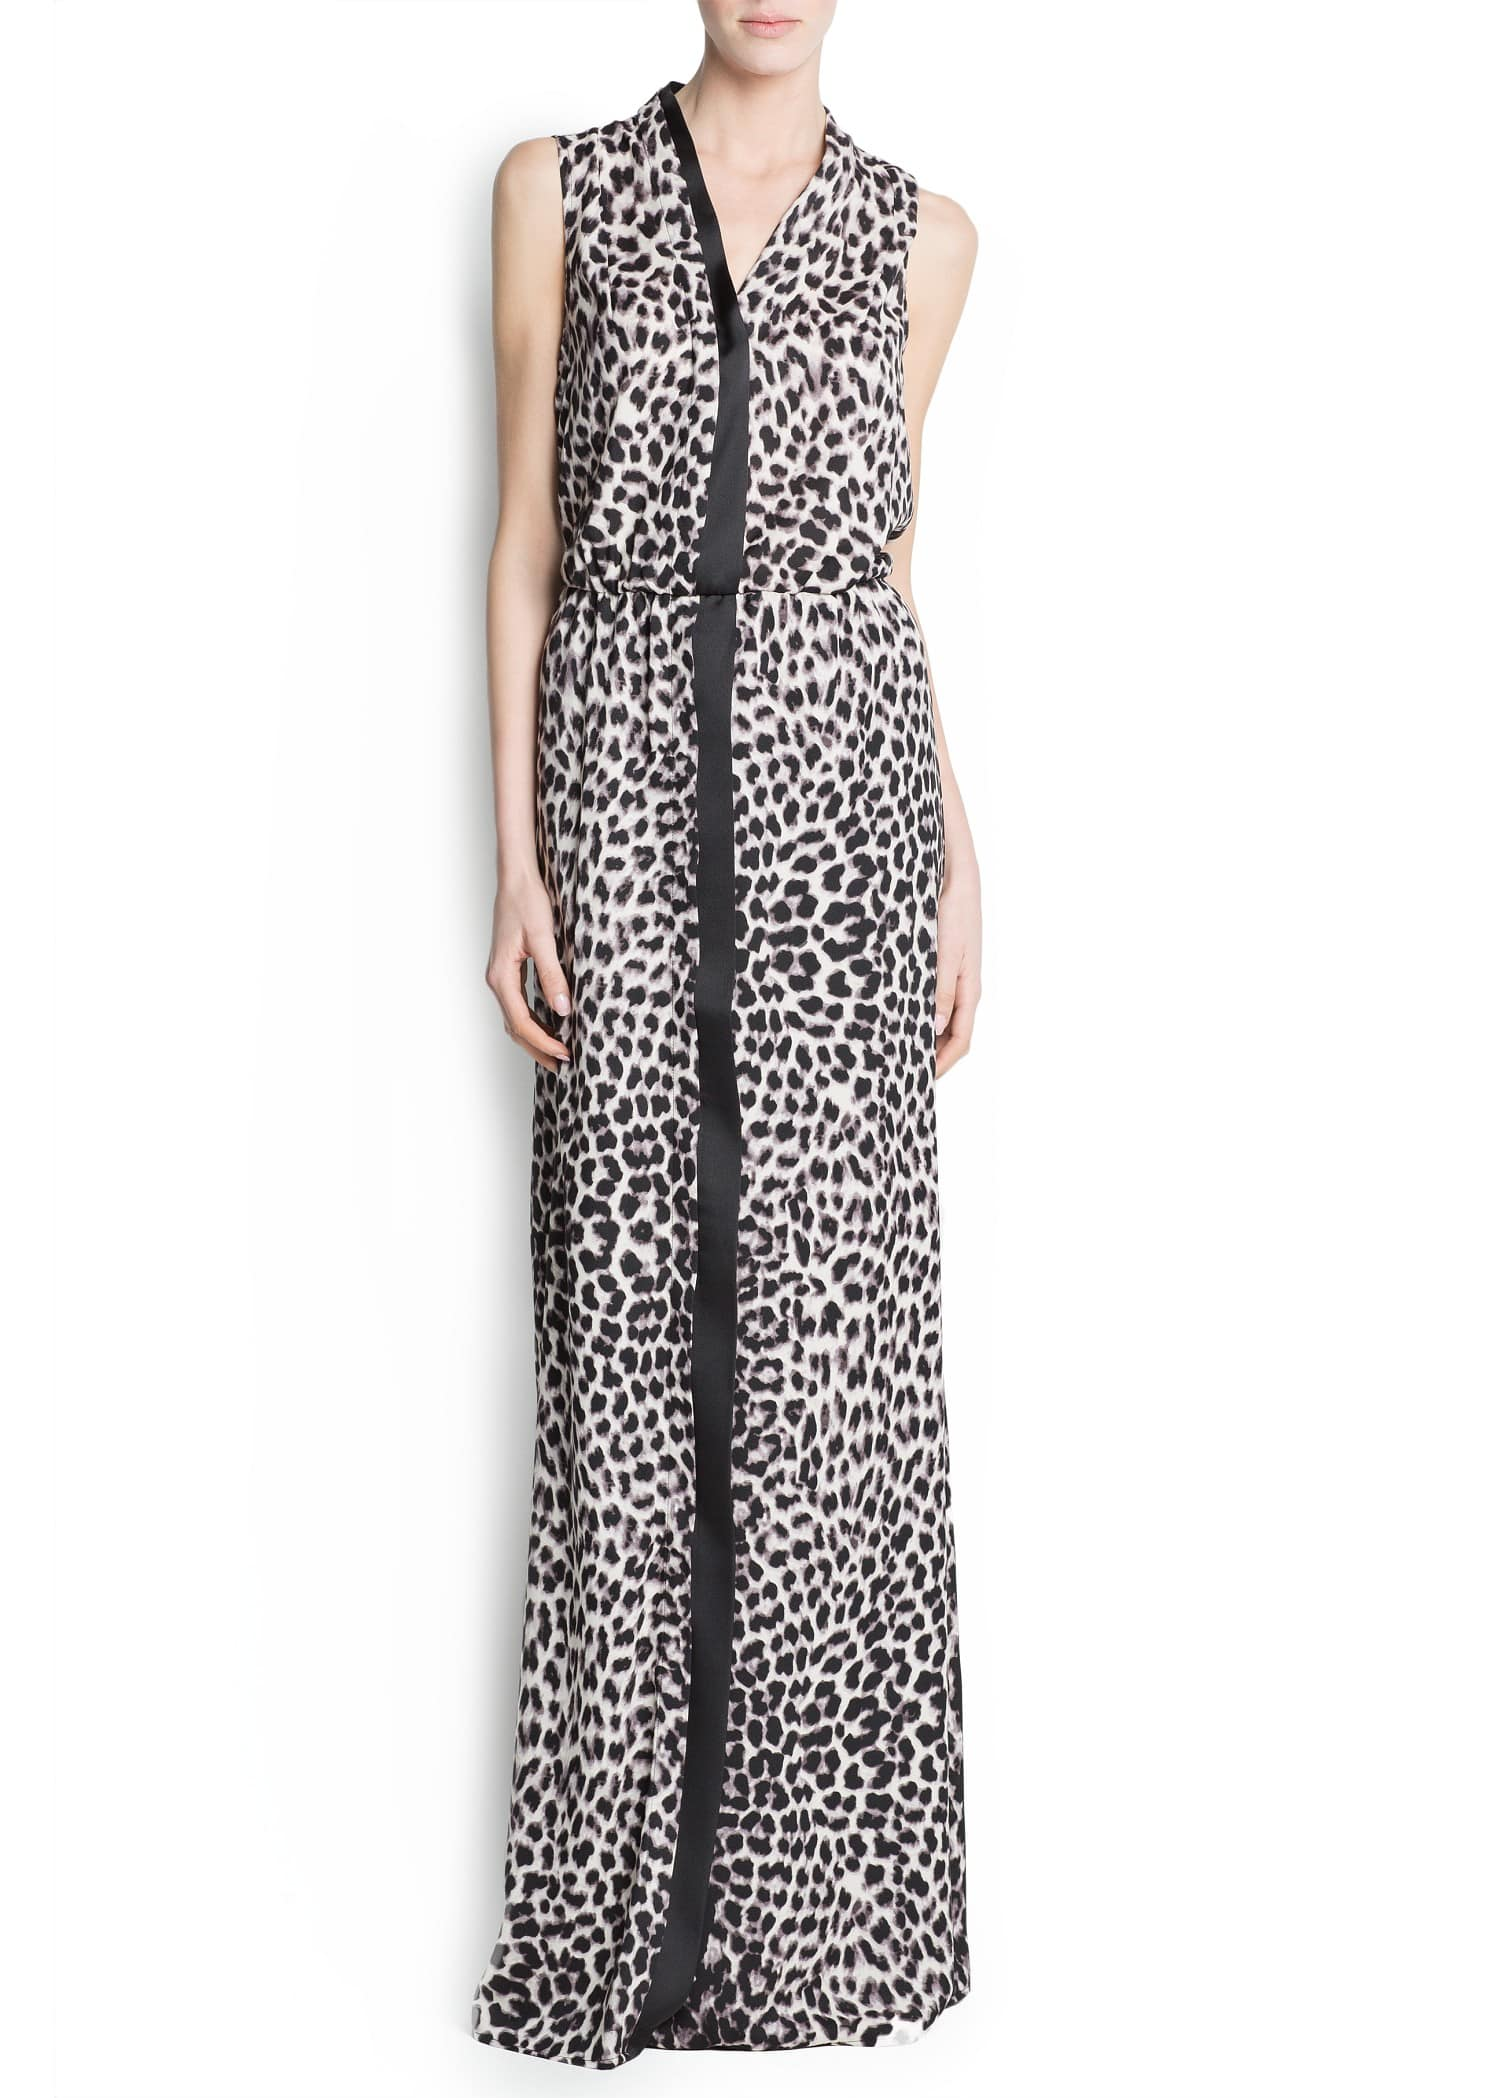 Leopard Print Crossed Crossed Leopard Print Gown Gown by7g6f